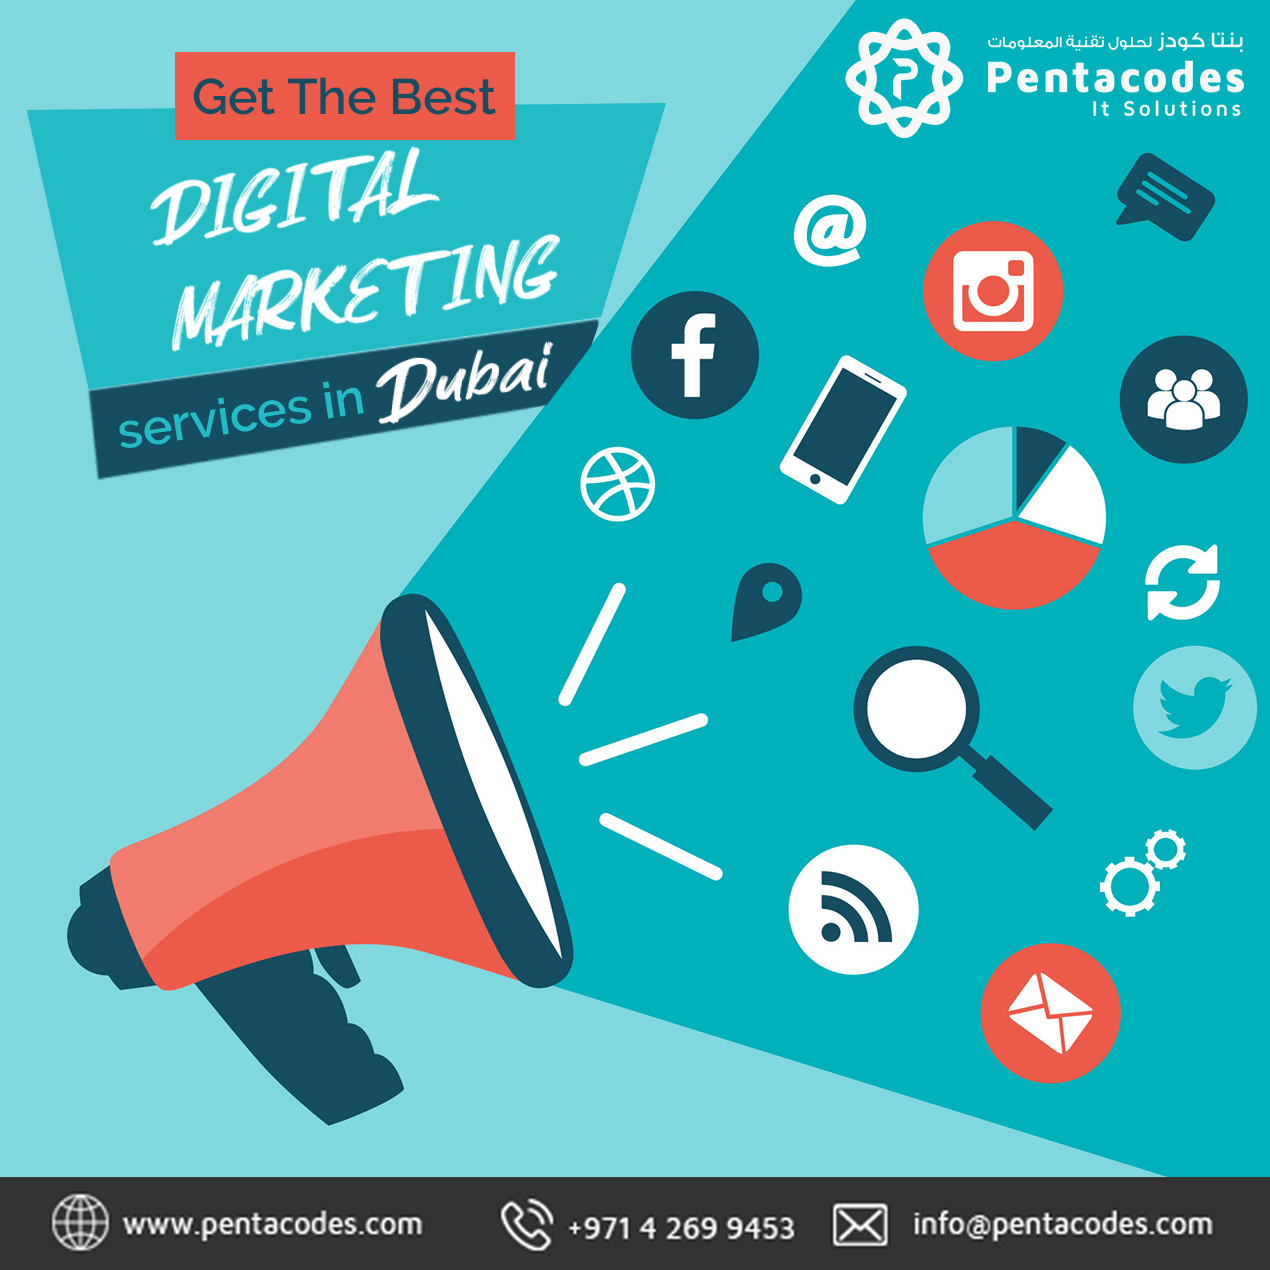 Want To Shout Out Your Business To The World Get Our Digital Marketing Services Right Now Dig Digital Marketing Digital Marketing Services Web Design Agency